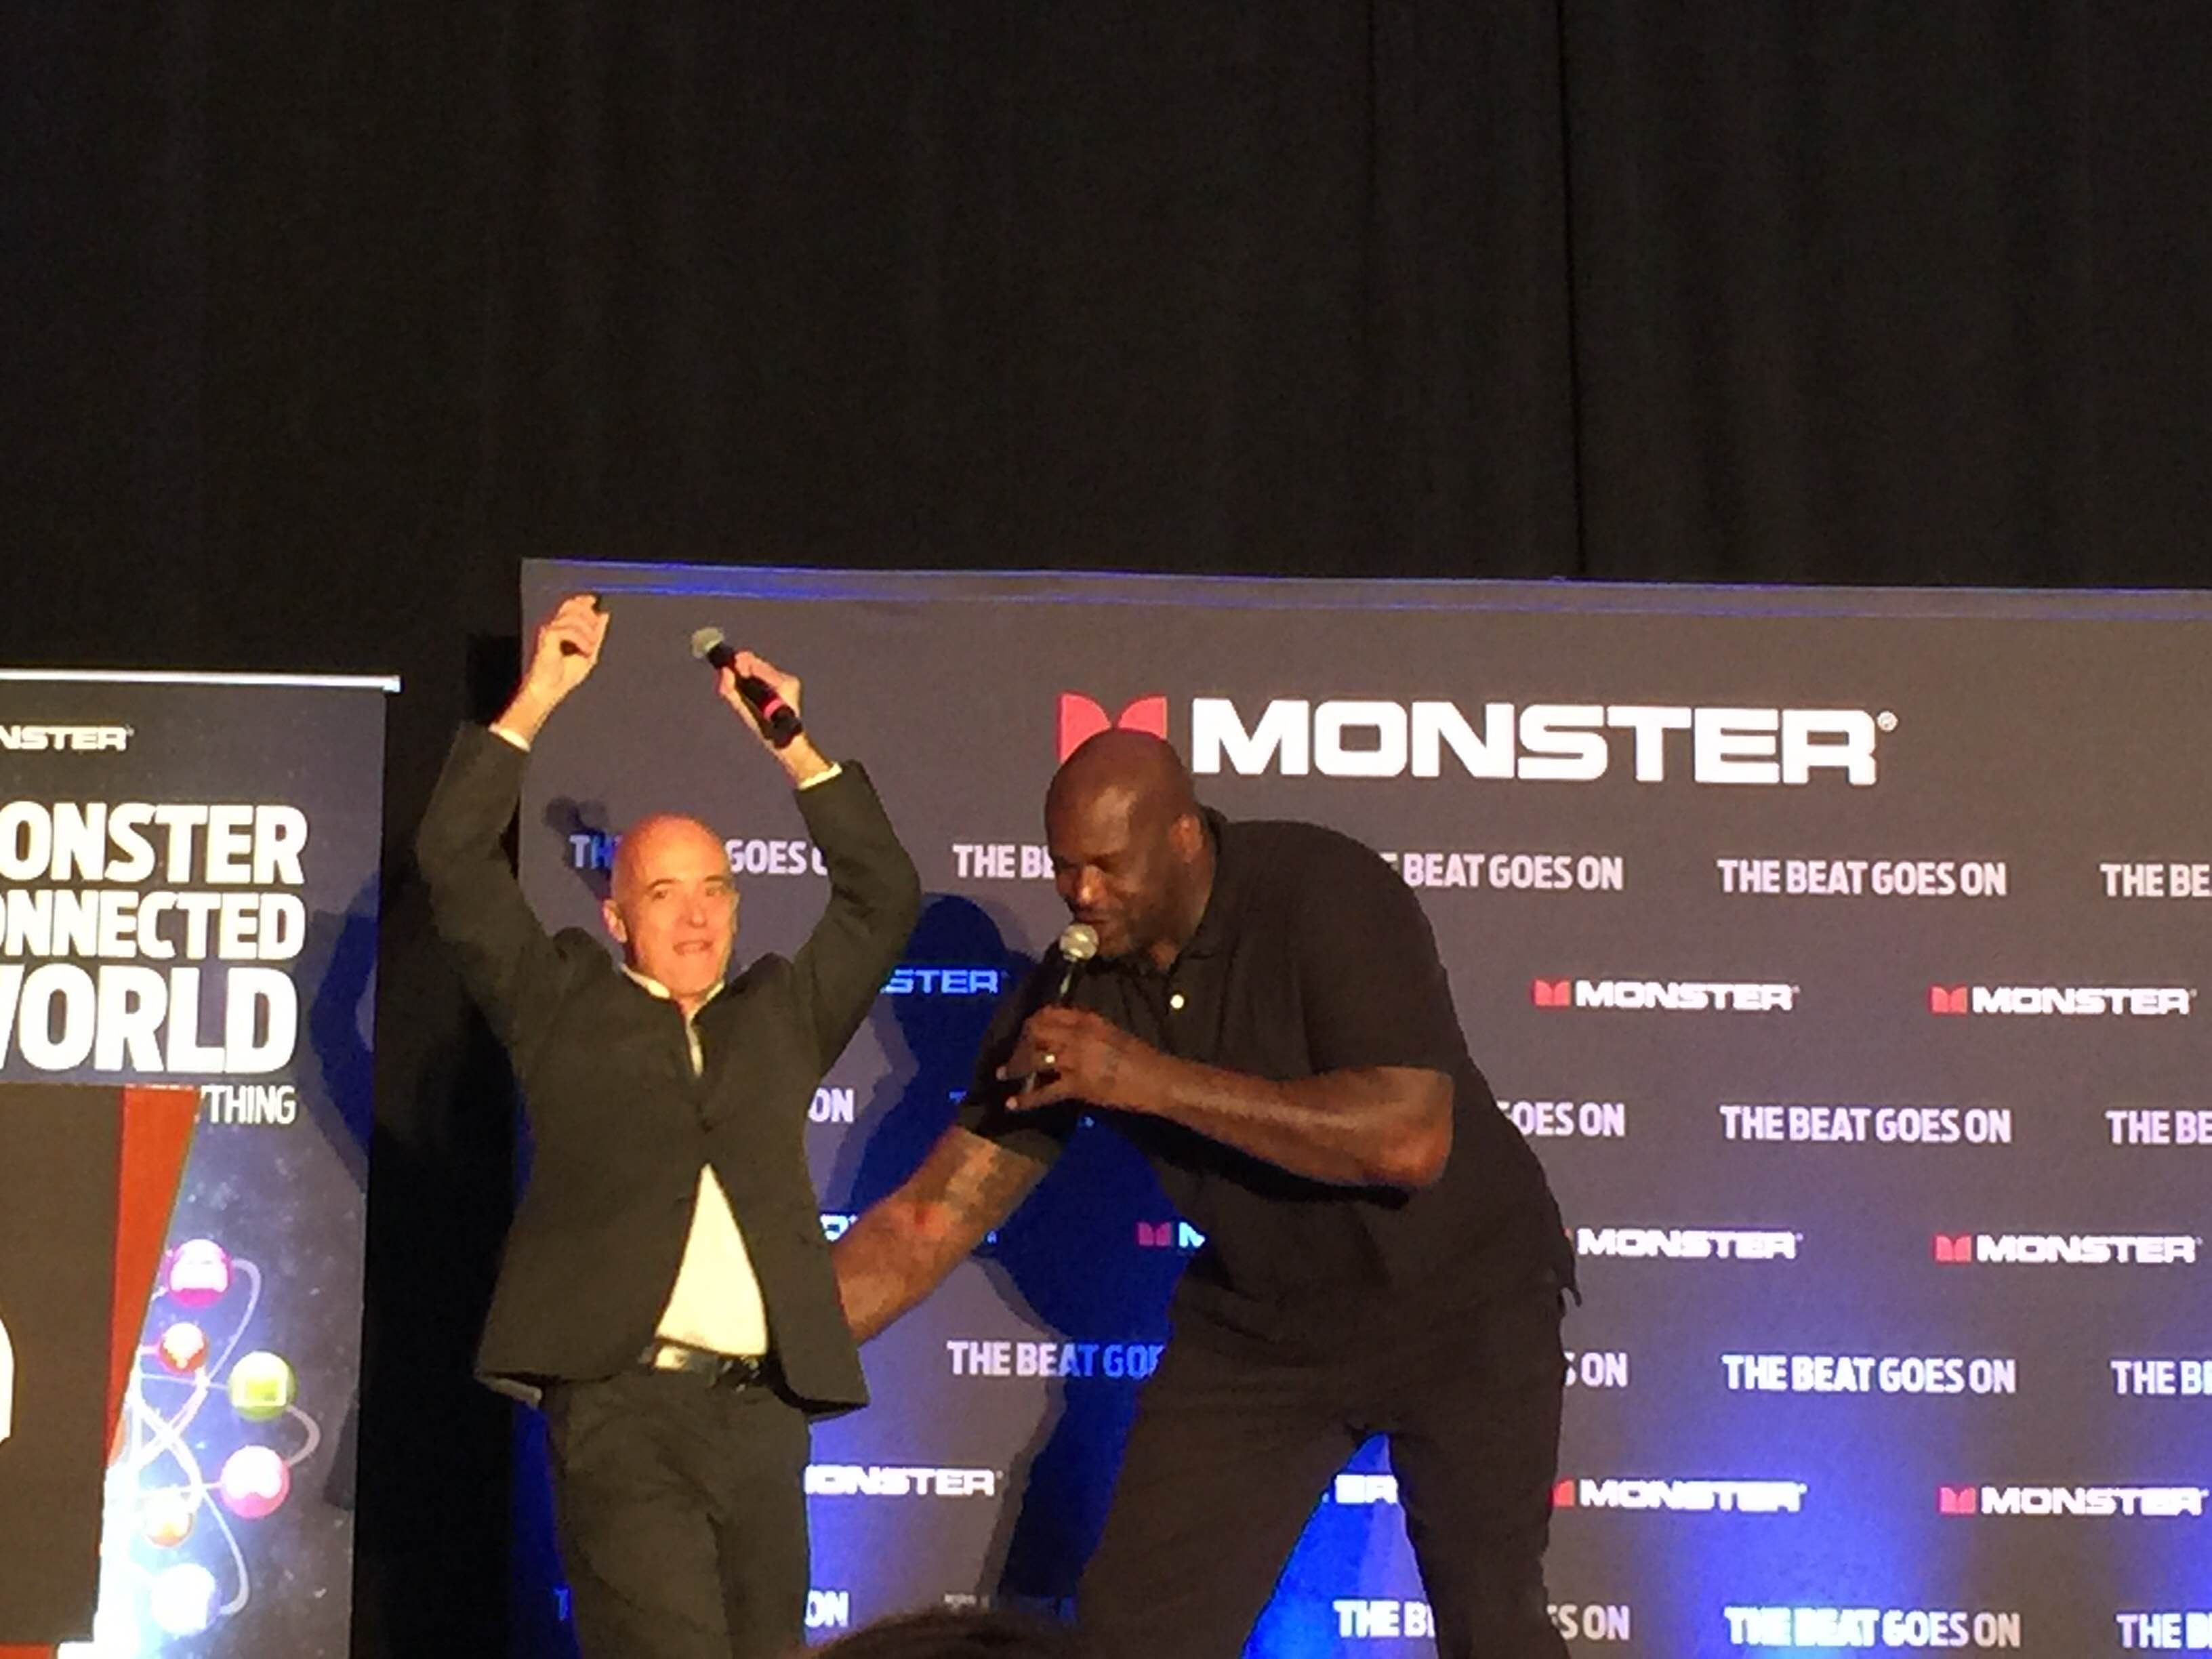 Shaquille O'Neal announced Monster's newest wireless speaker, the SuperStar BackFloat, during CES. He then attempted to drop a beat while Monster director of product development Vern Smith dropped it like it was hot.